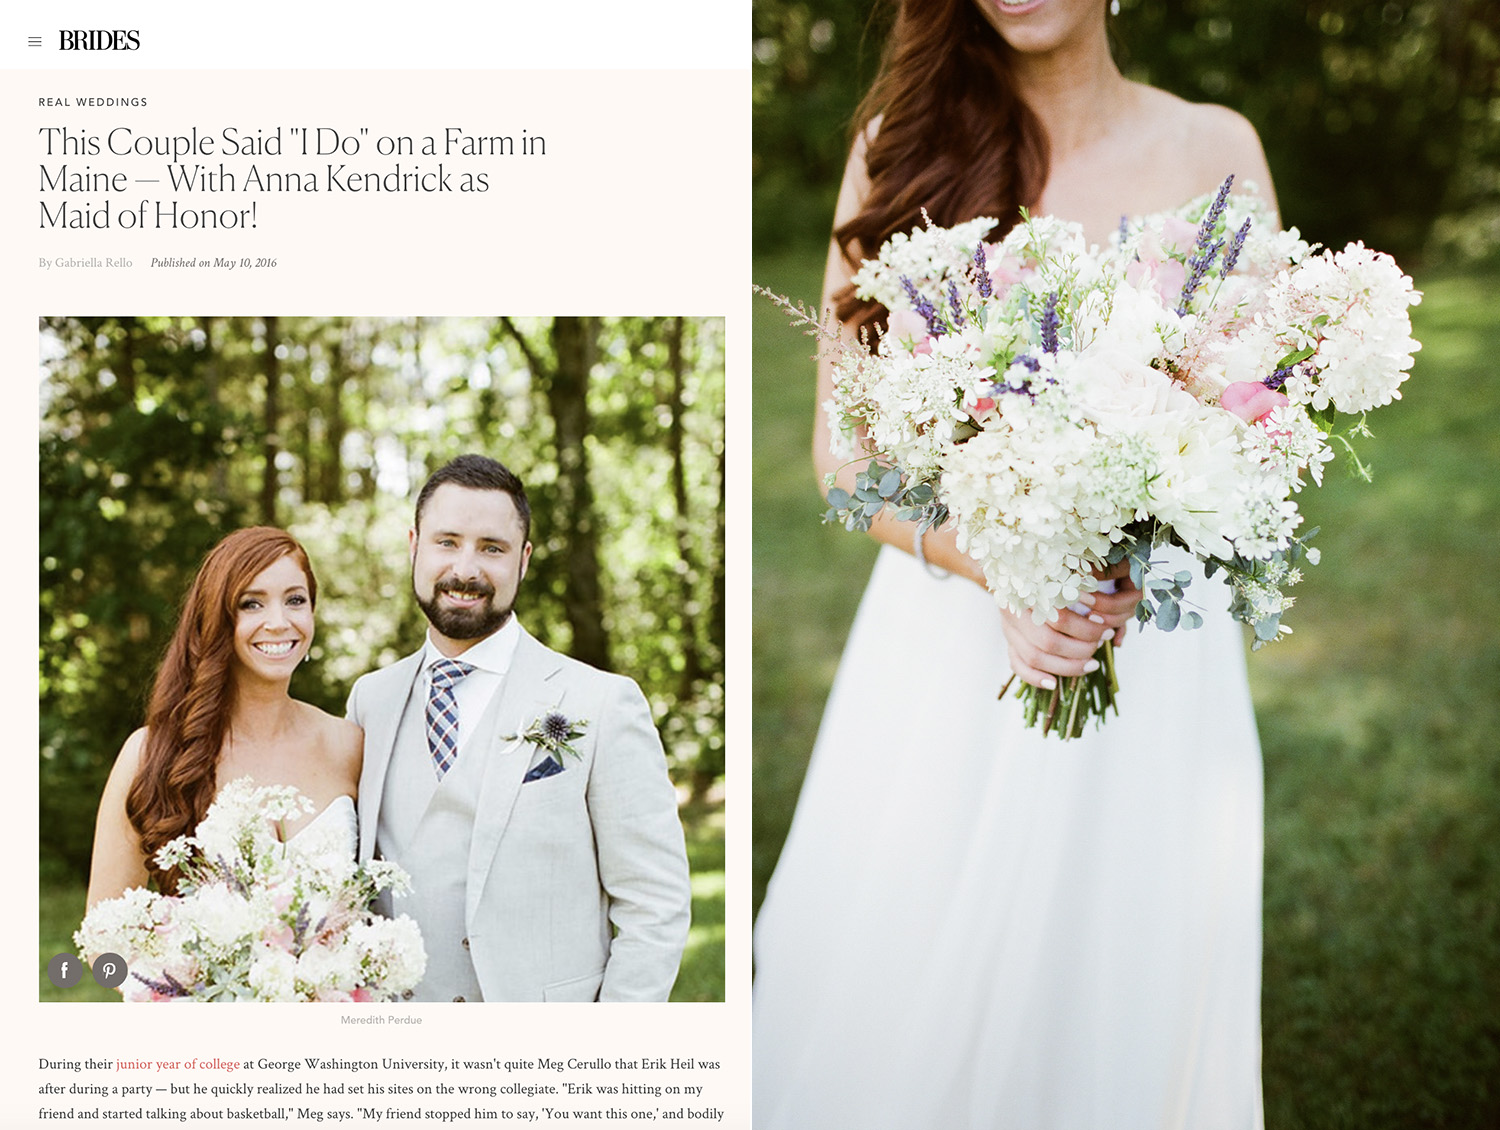 Michelle Peele in BRIDES magazine